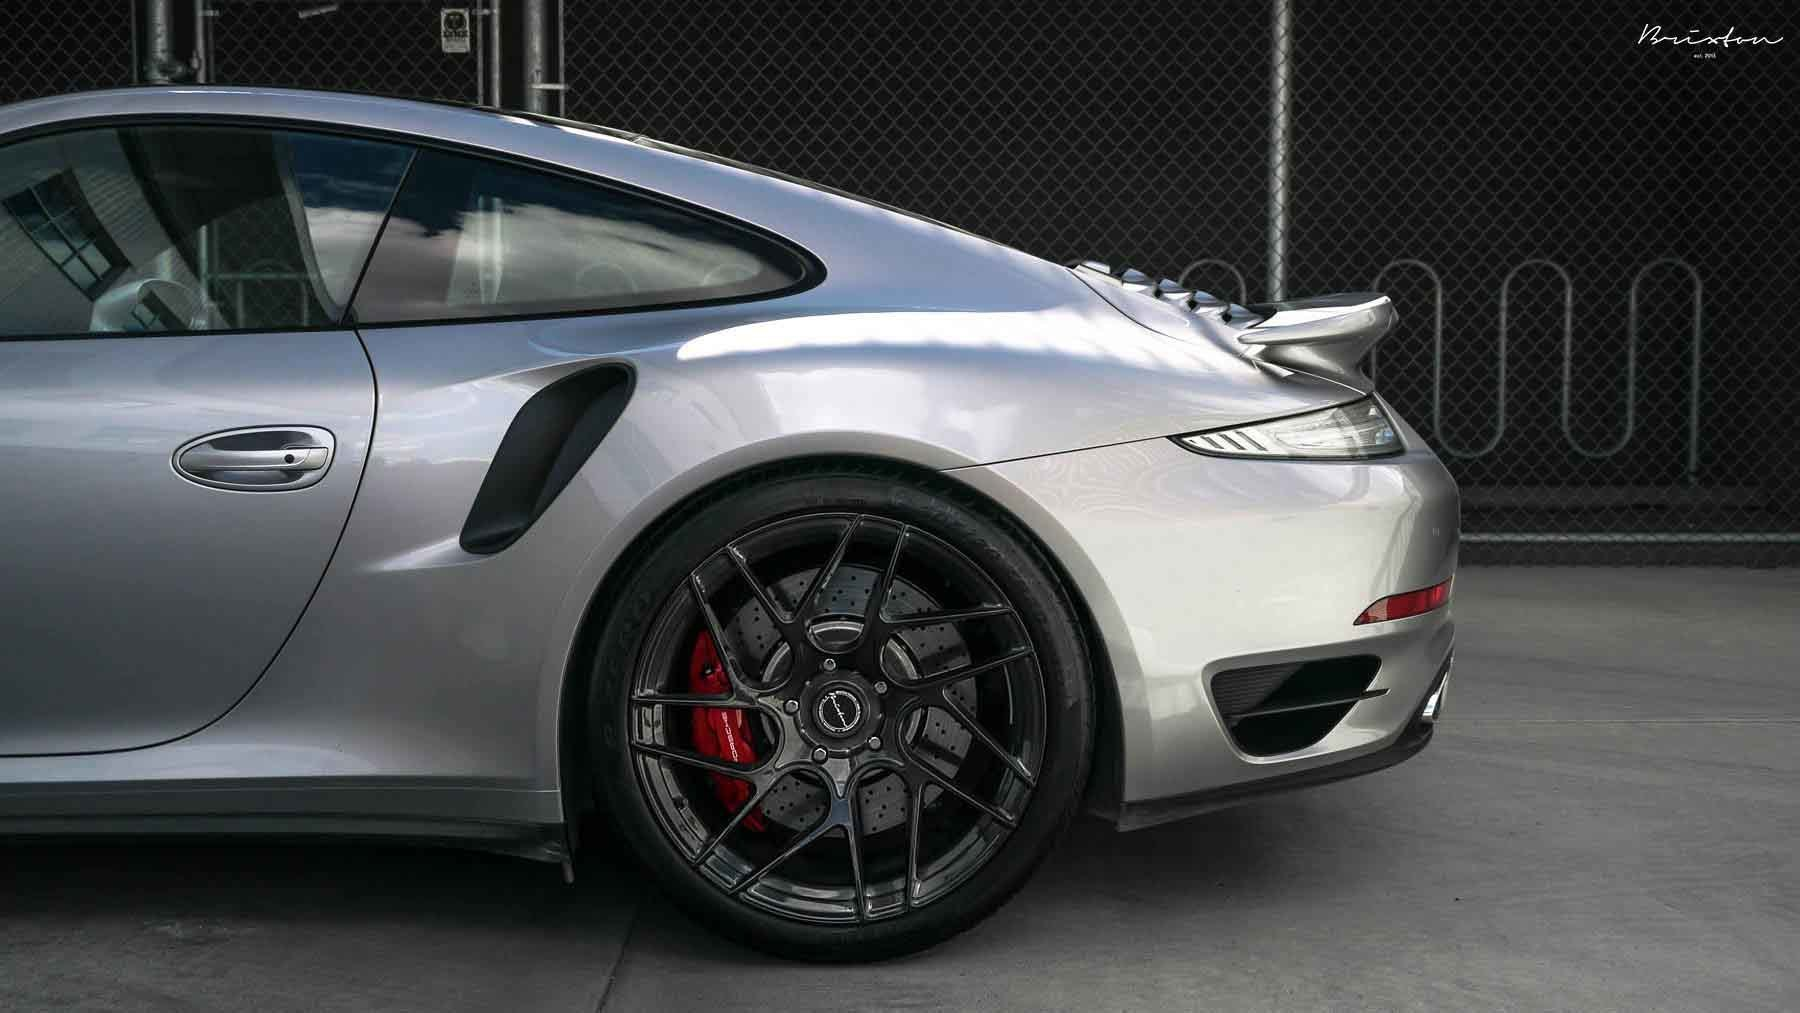 images-products-1-2566-232974854-brixton-forged-silver-porsche-991-turbo-s-brixton-forged-cm7-ultrasport-1-piece-concave-forged-w.jpg